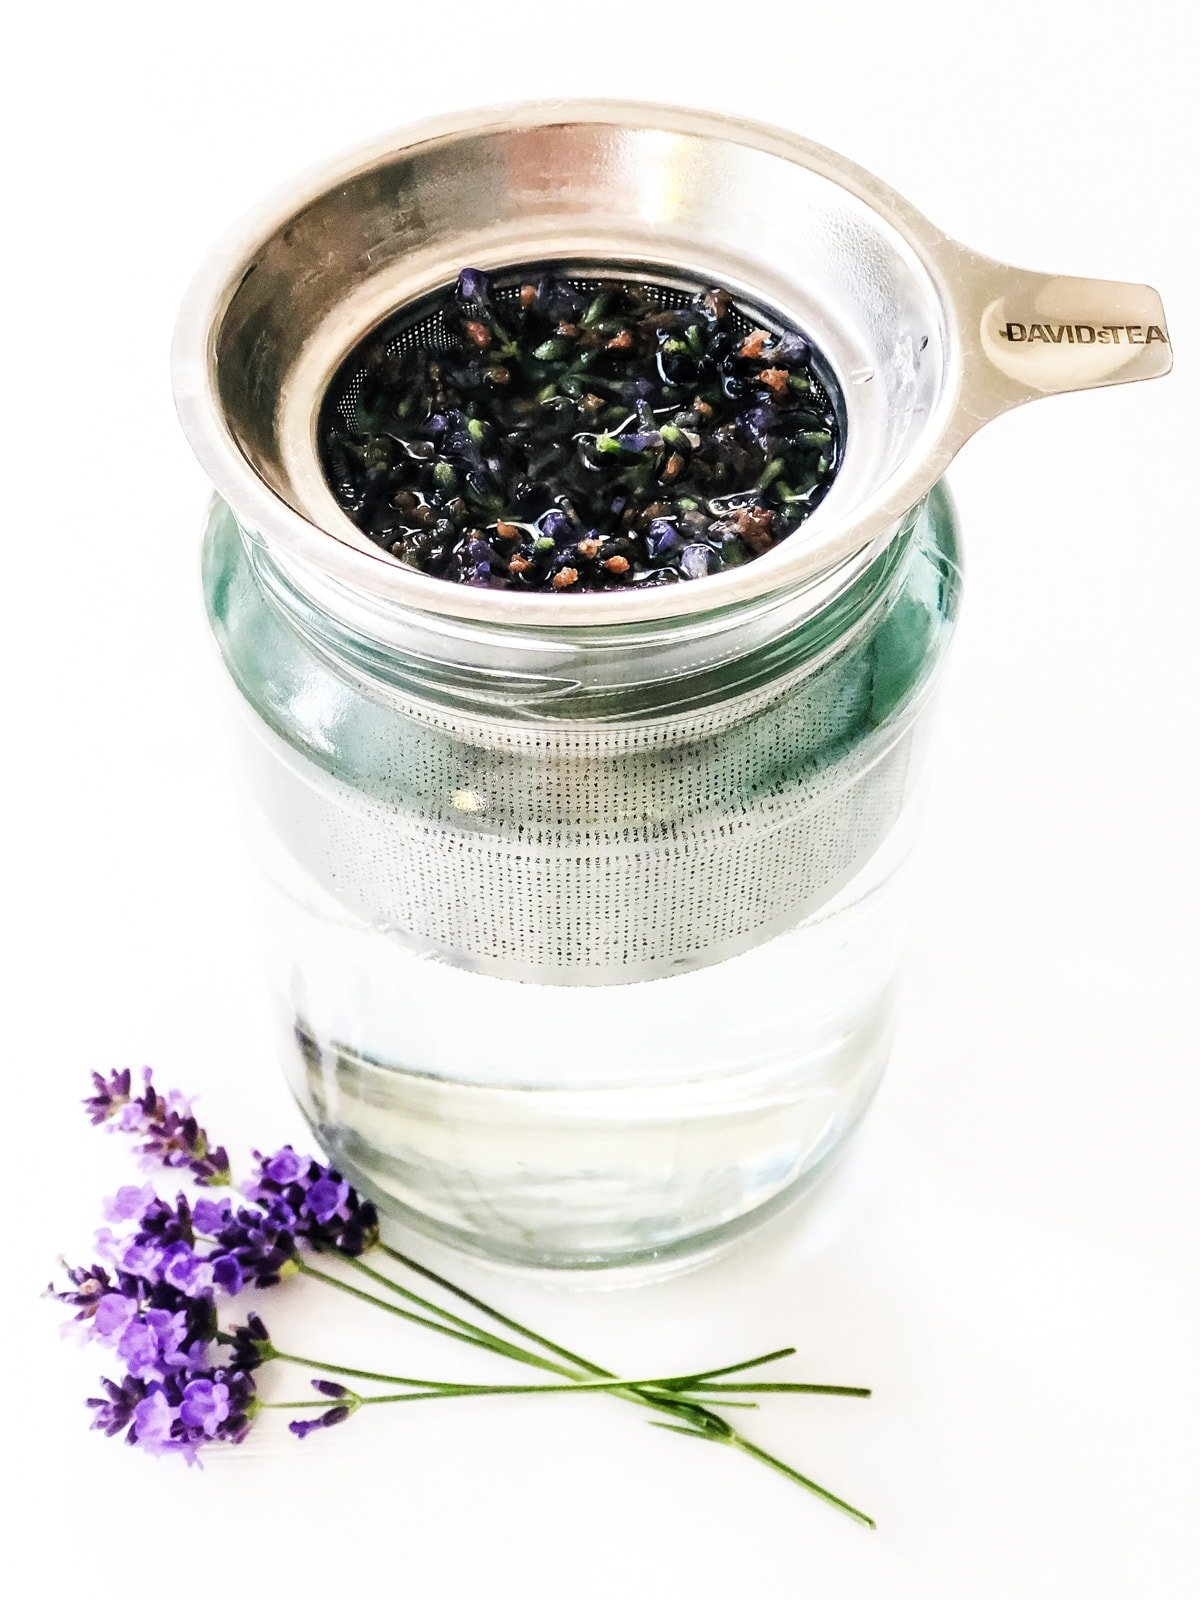 How to Make Lavender Tea